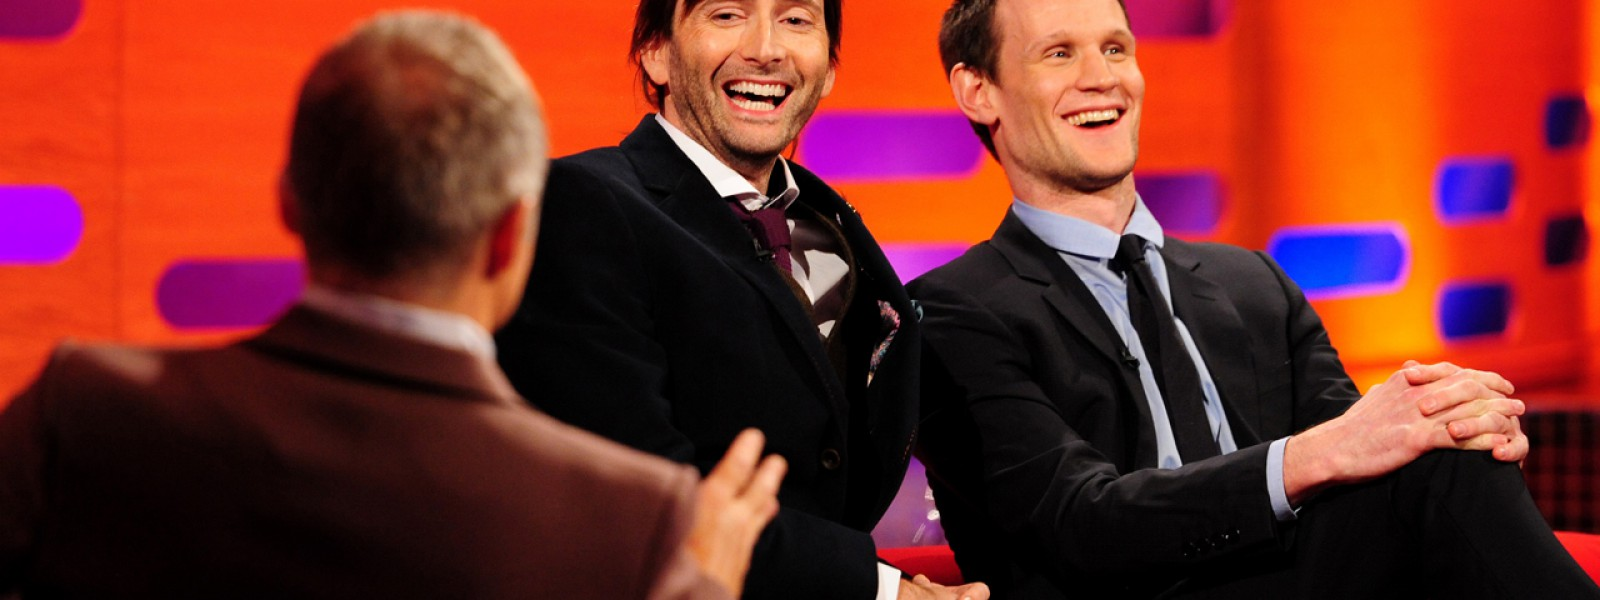 the-graham-norton-show-s14-ep6-04